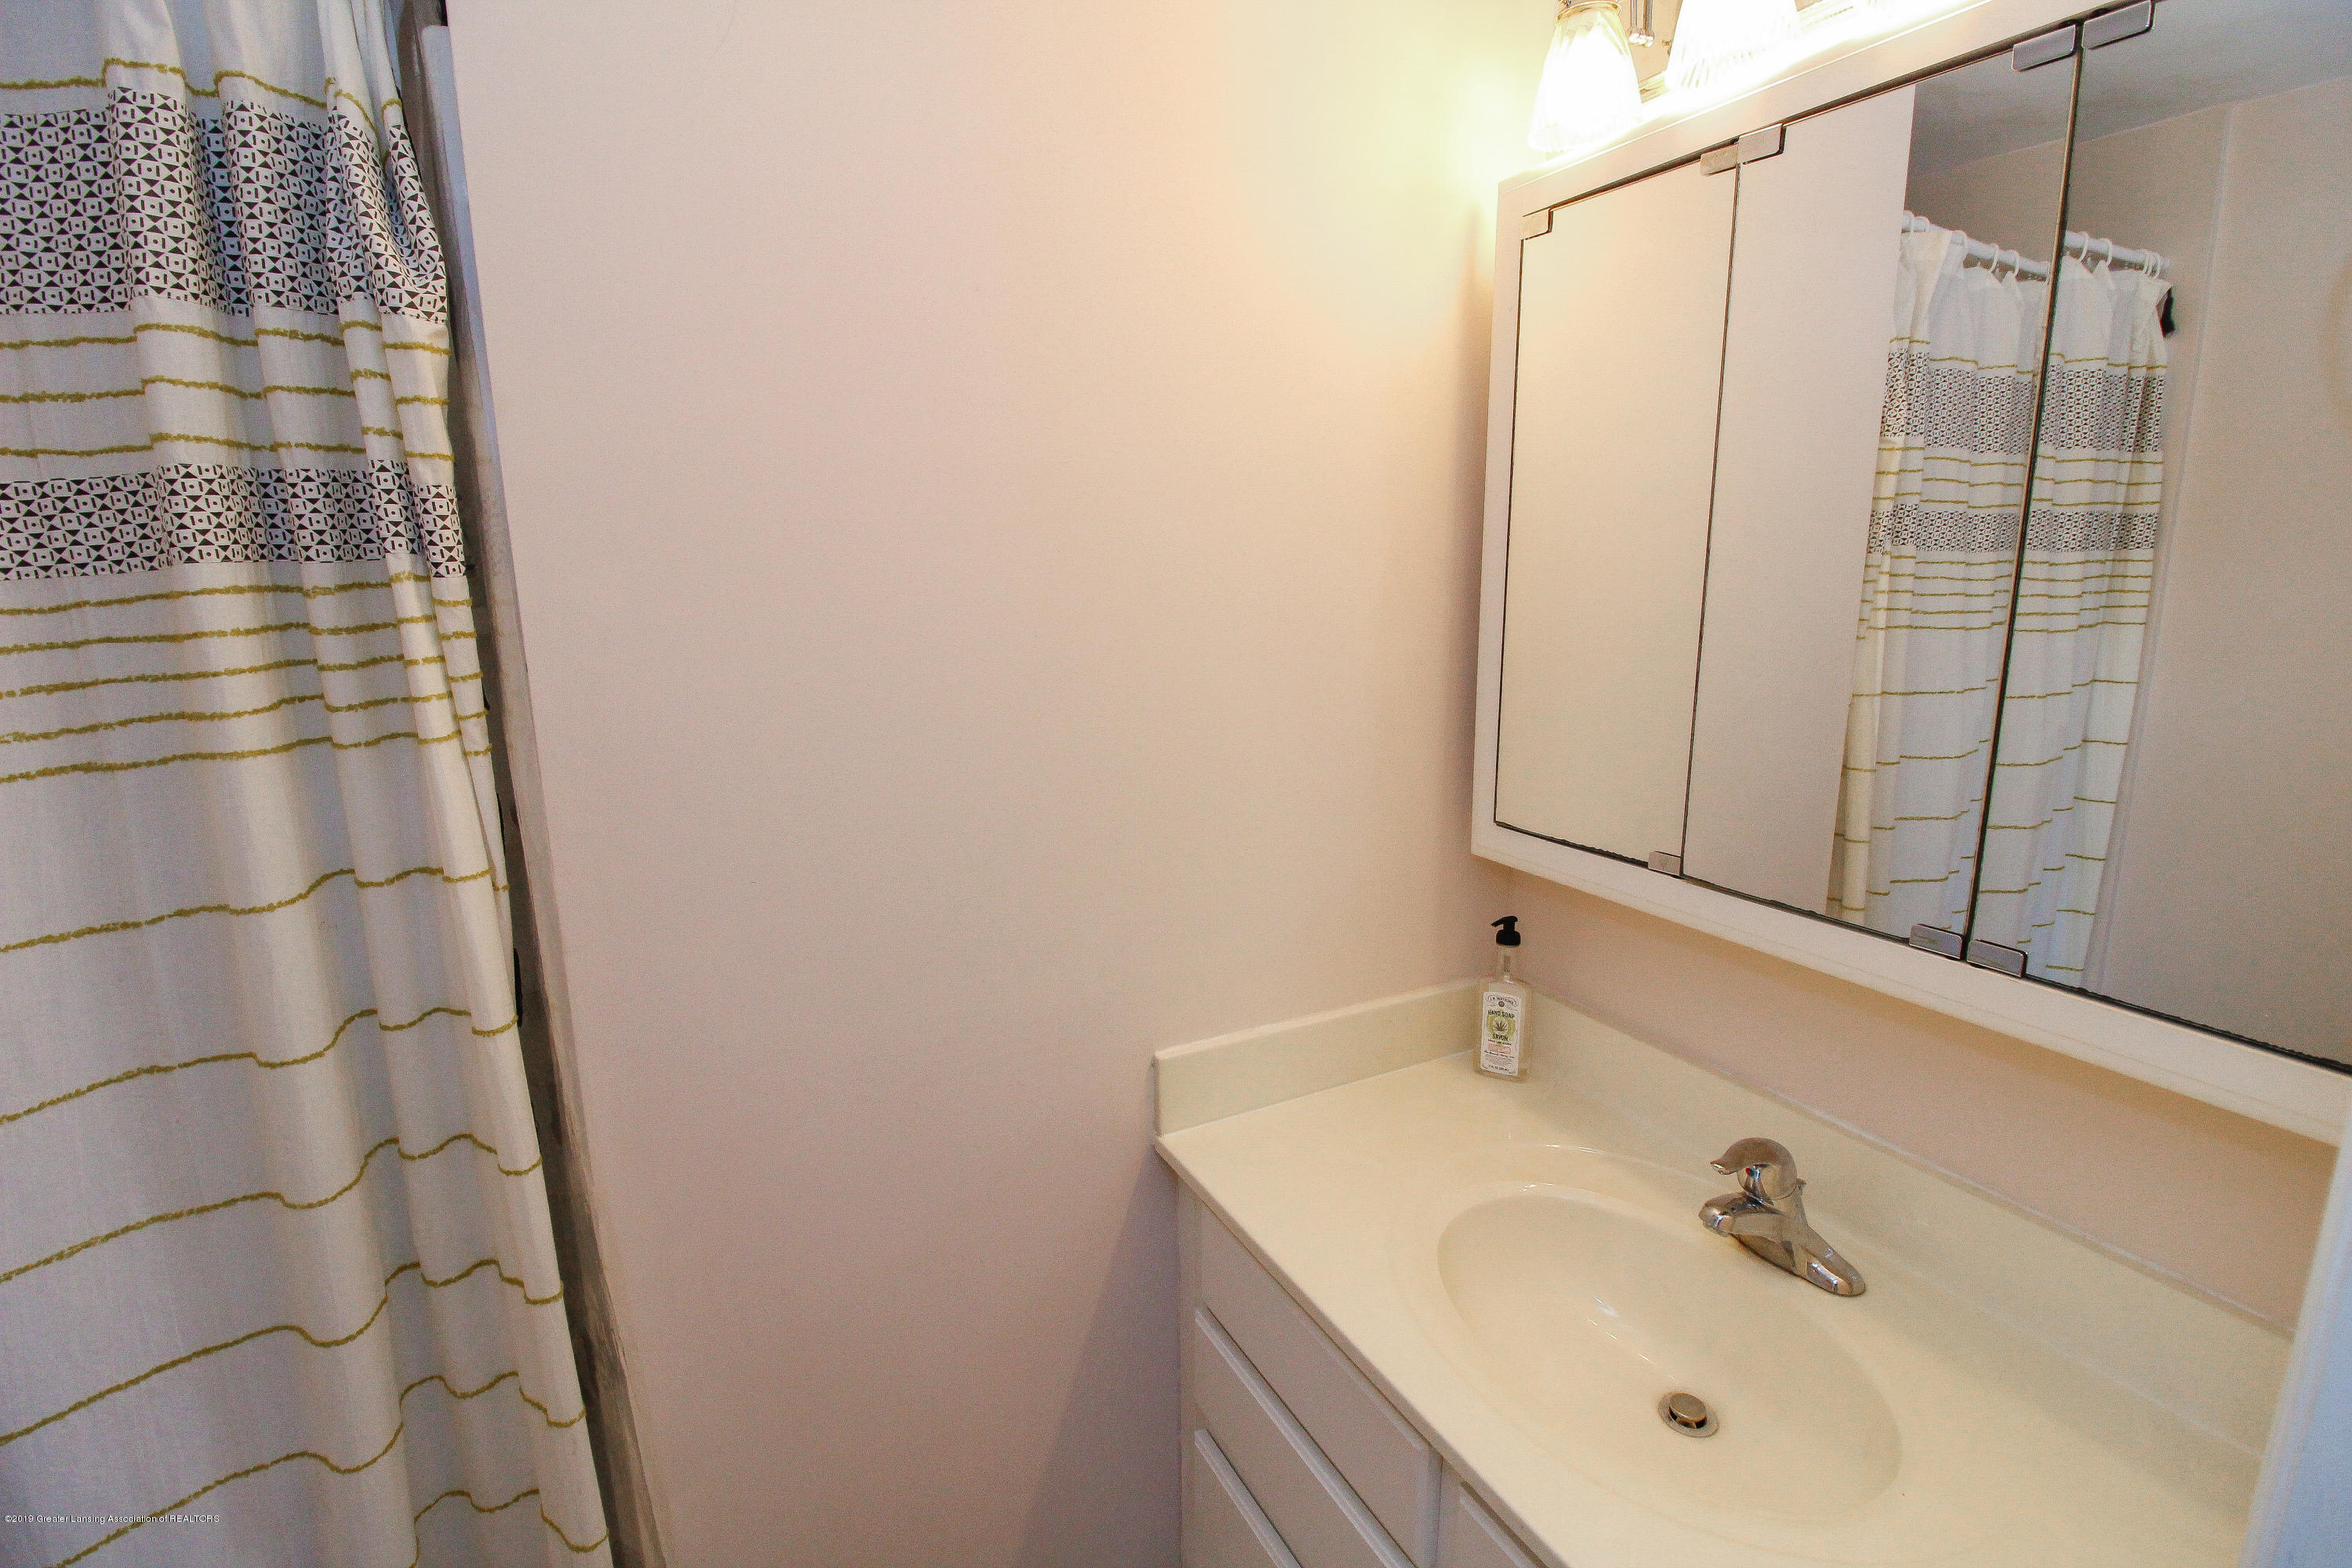 200 W Cass St - Bathroom off Bedroom - 47